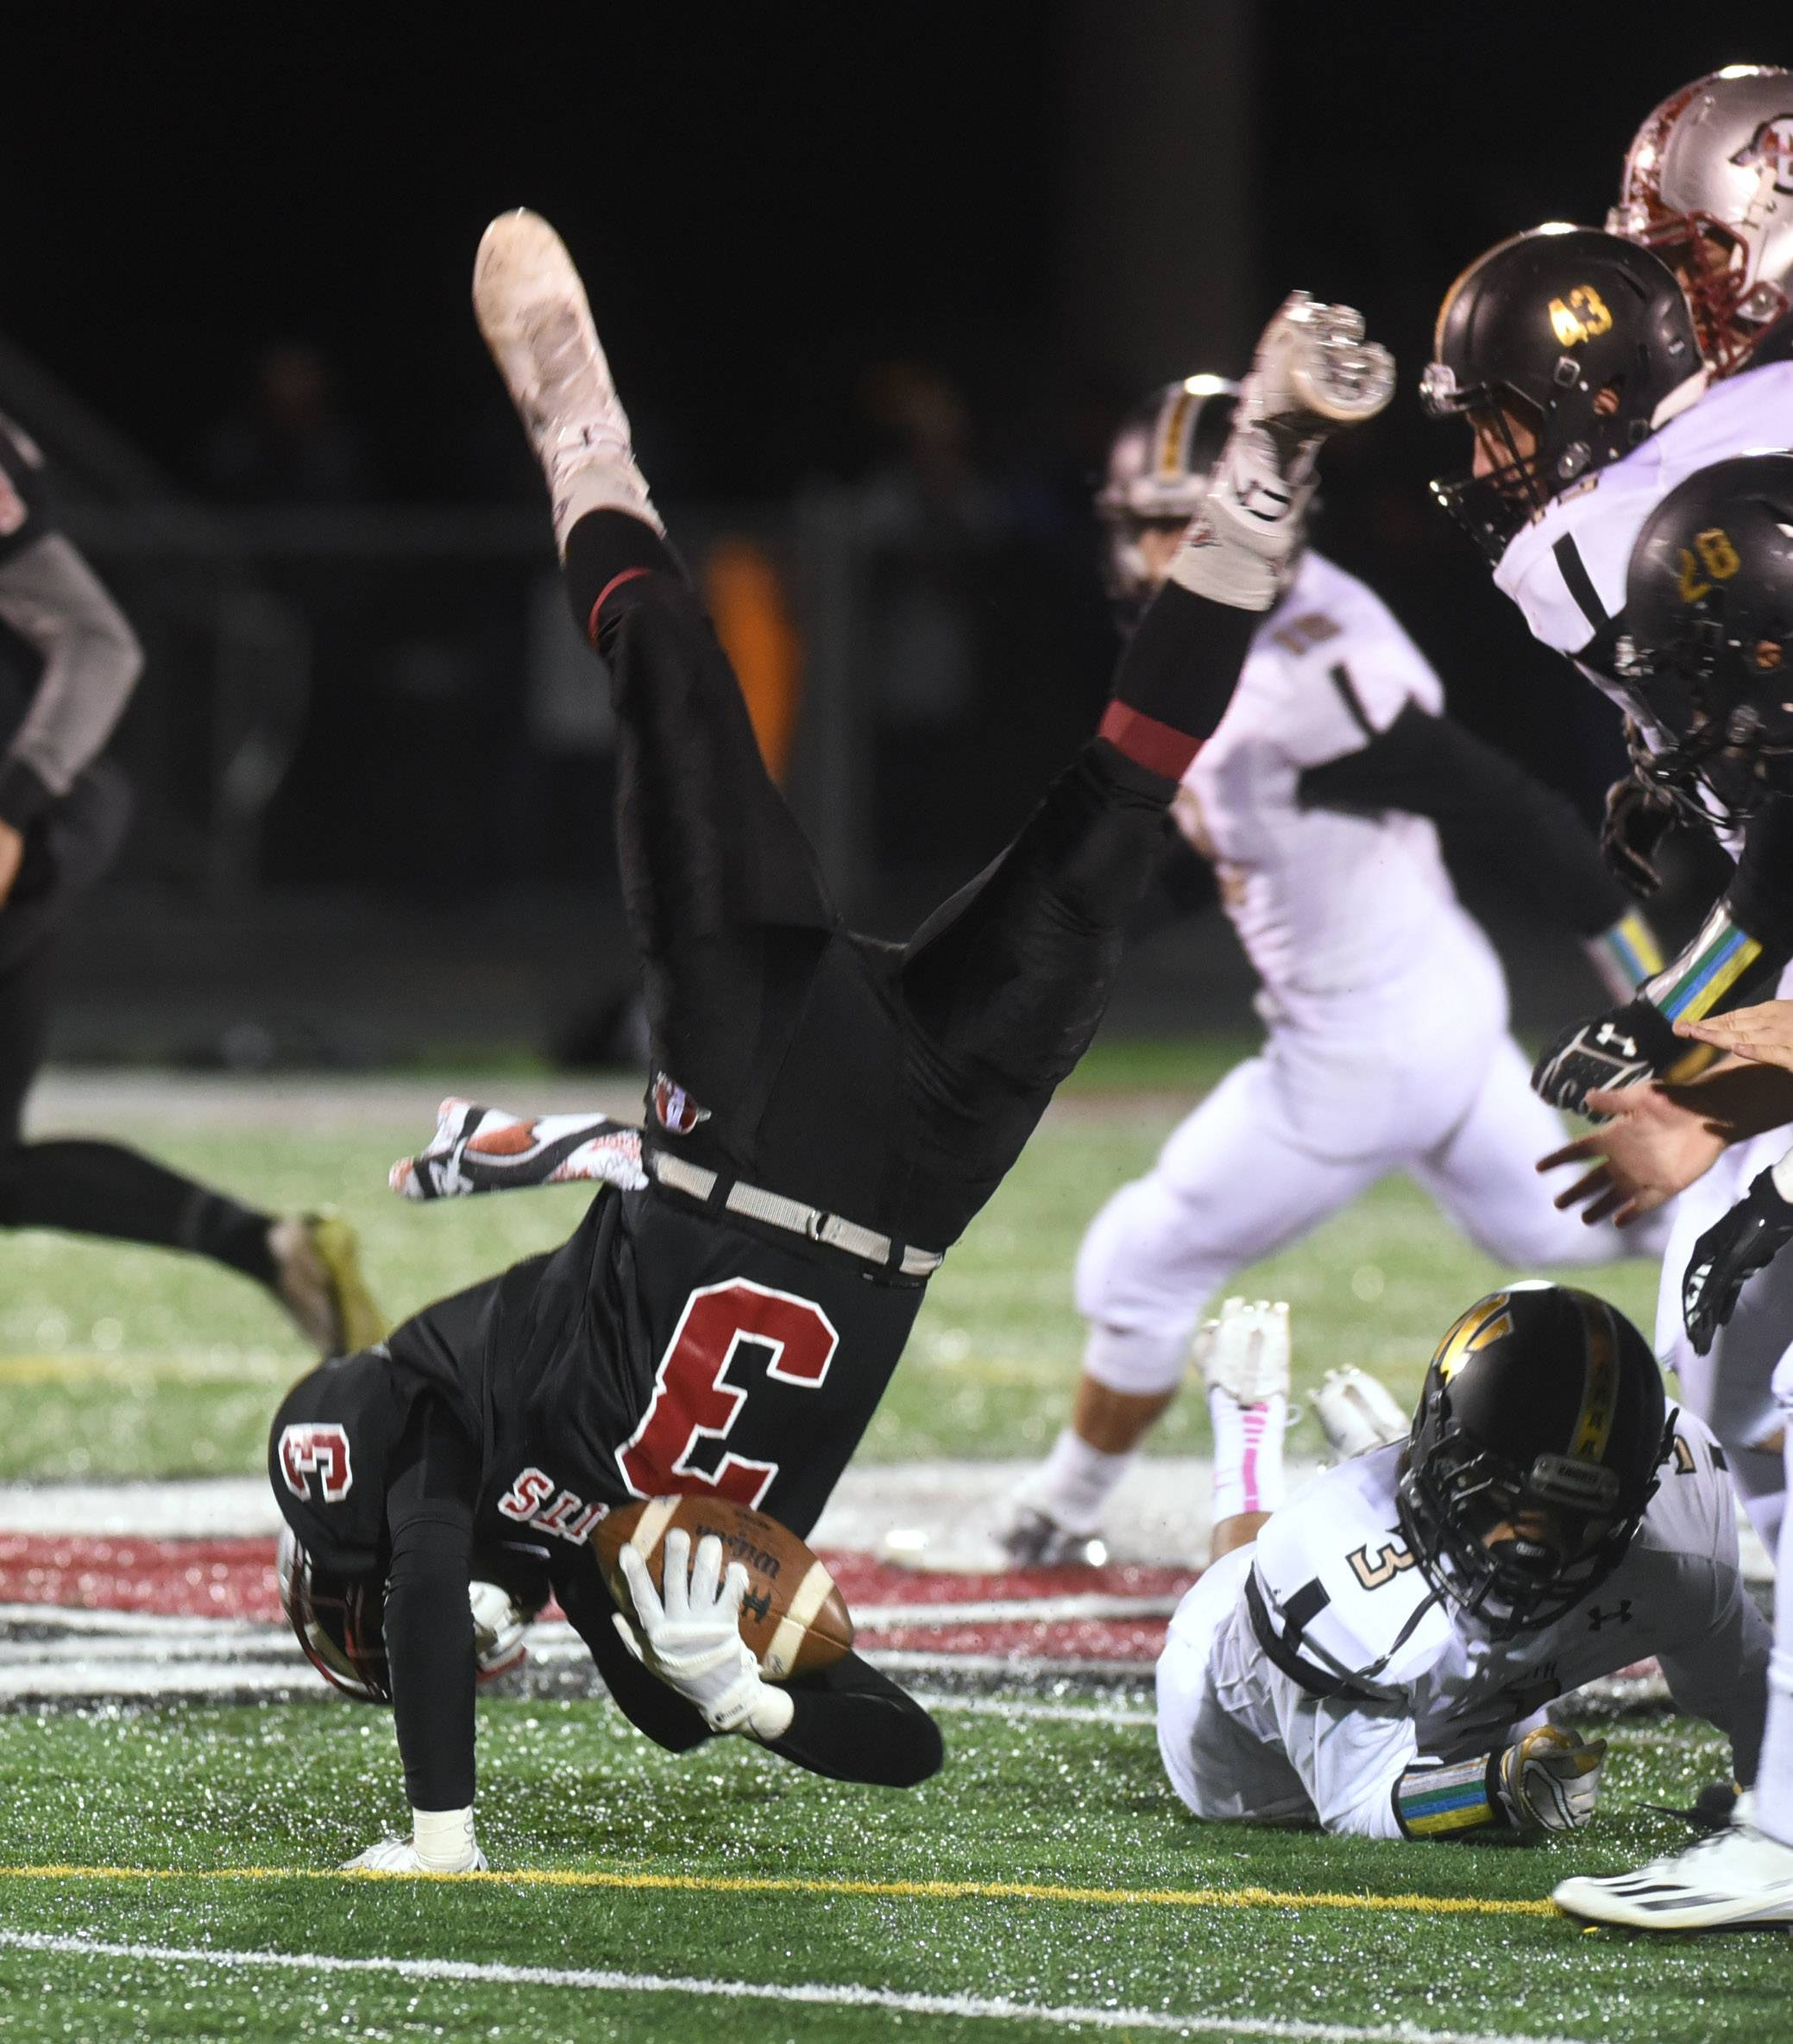 Antioch's Drew Porter (3) is upended as he runs the ball by Grayslake North's Sam Nayyer (3) during the first half of Friday's football game in Antioch.